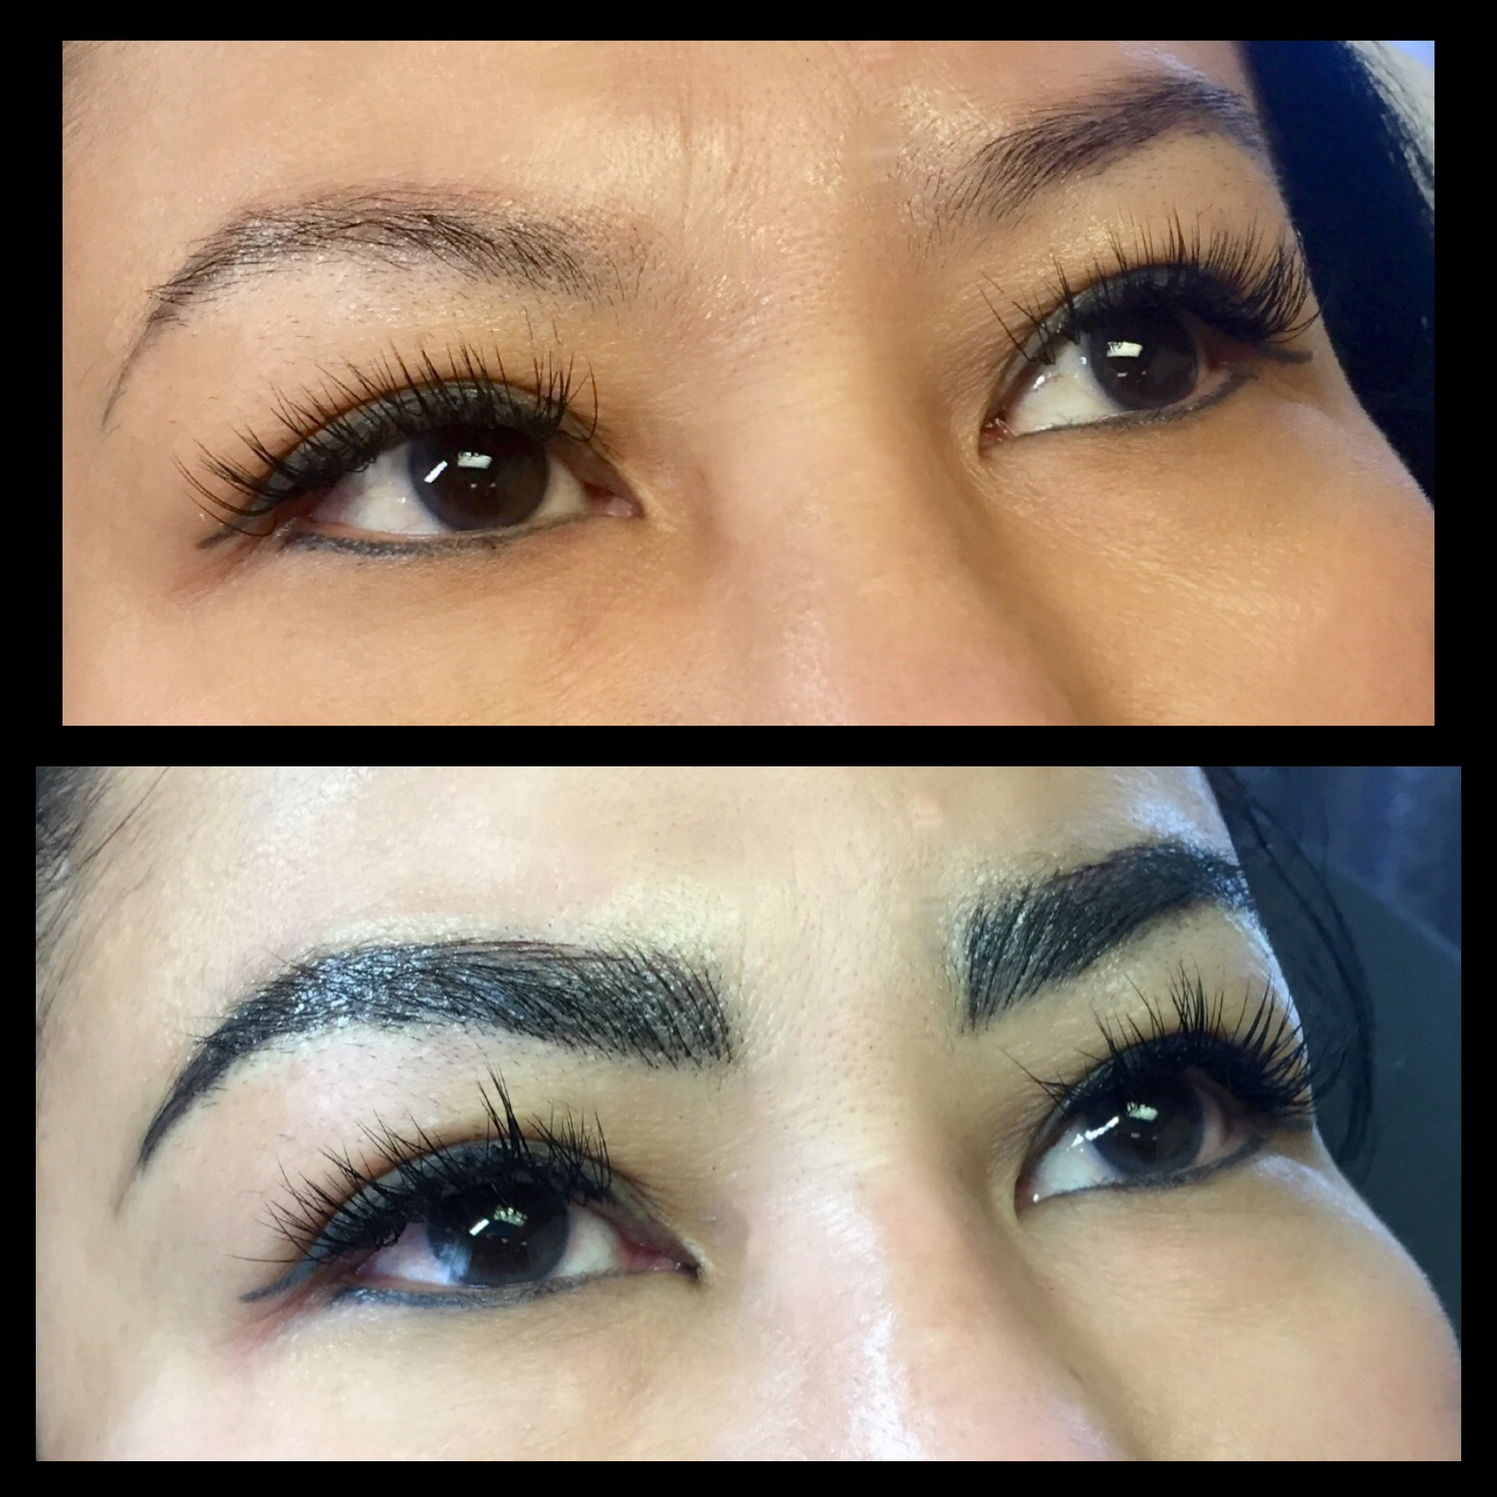 Coverup work done w/ Microblading